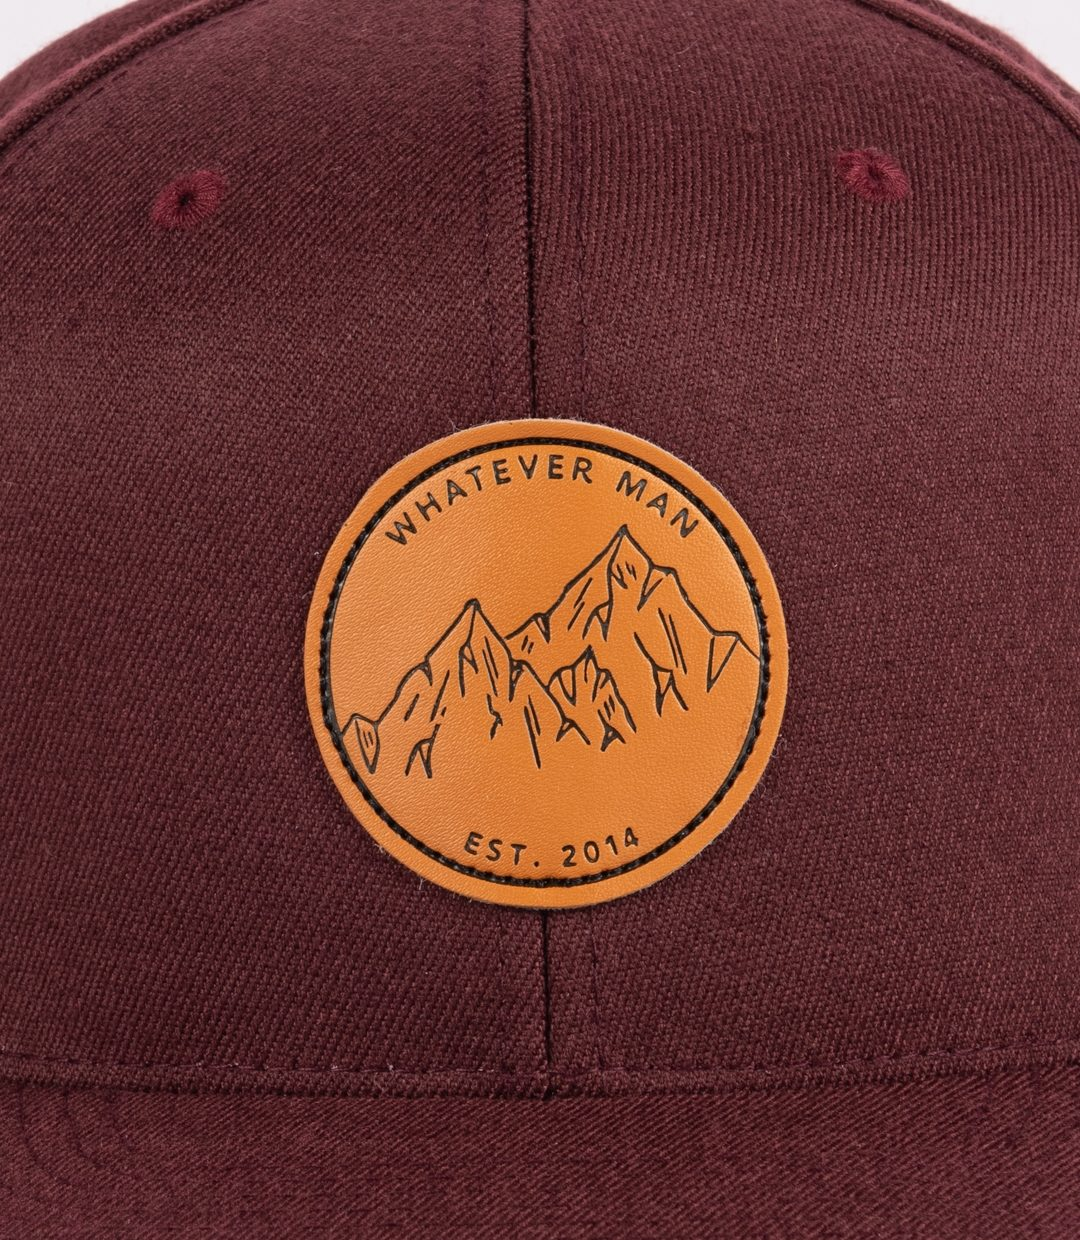 Whatever Man Leather Maroon Detail